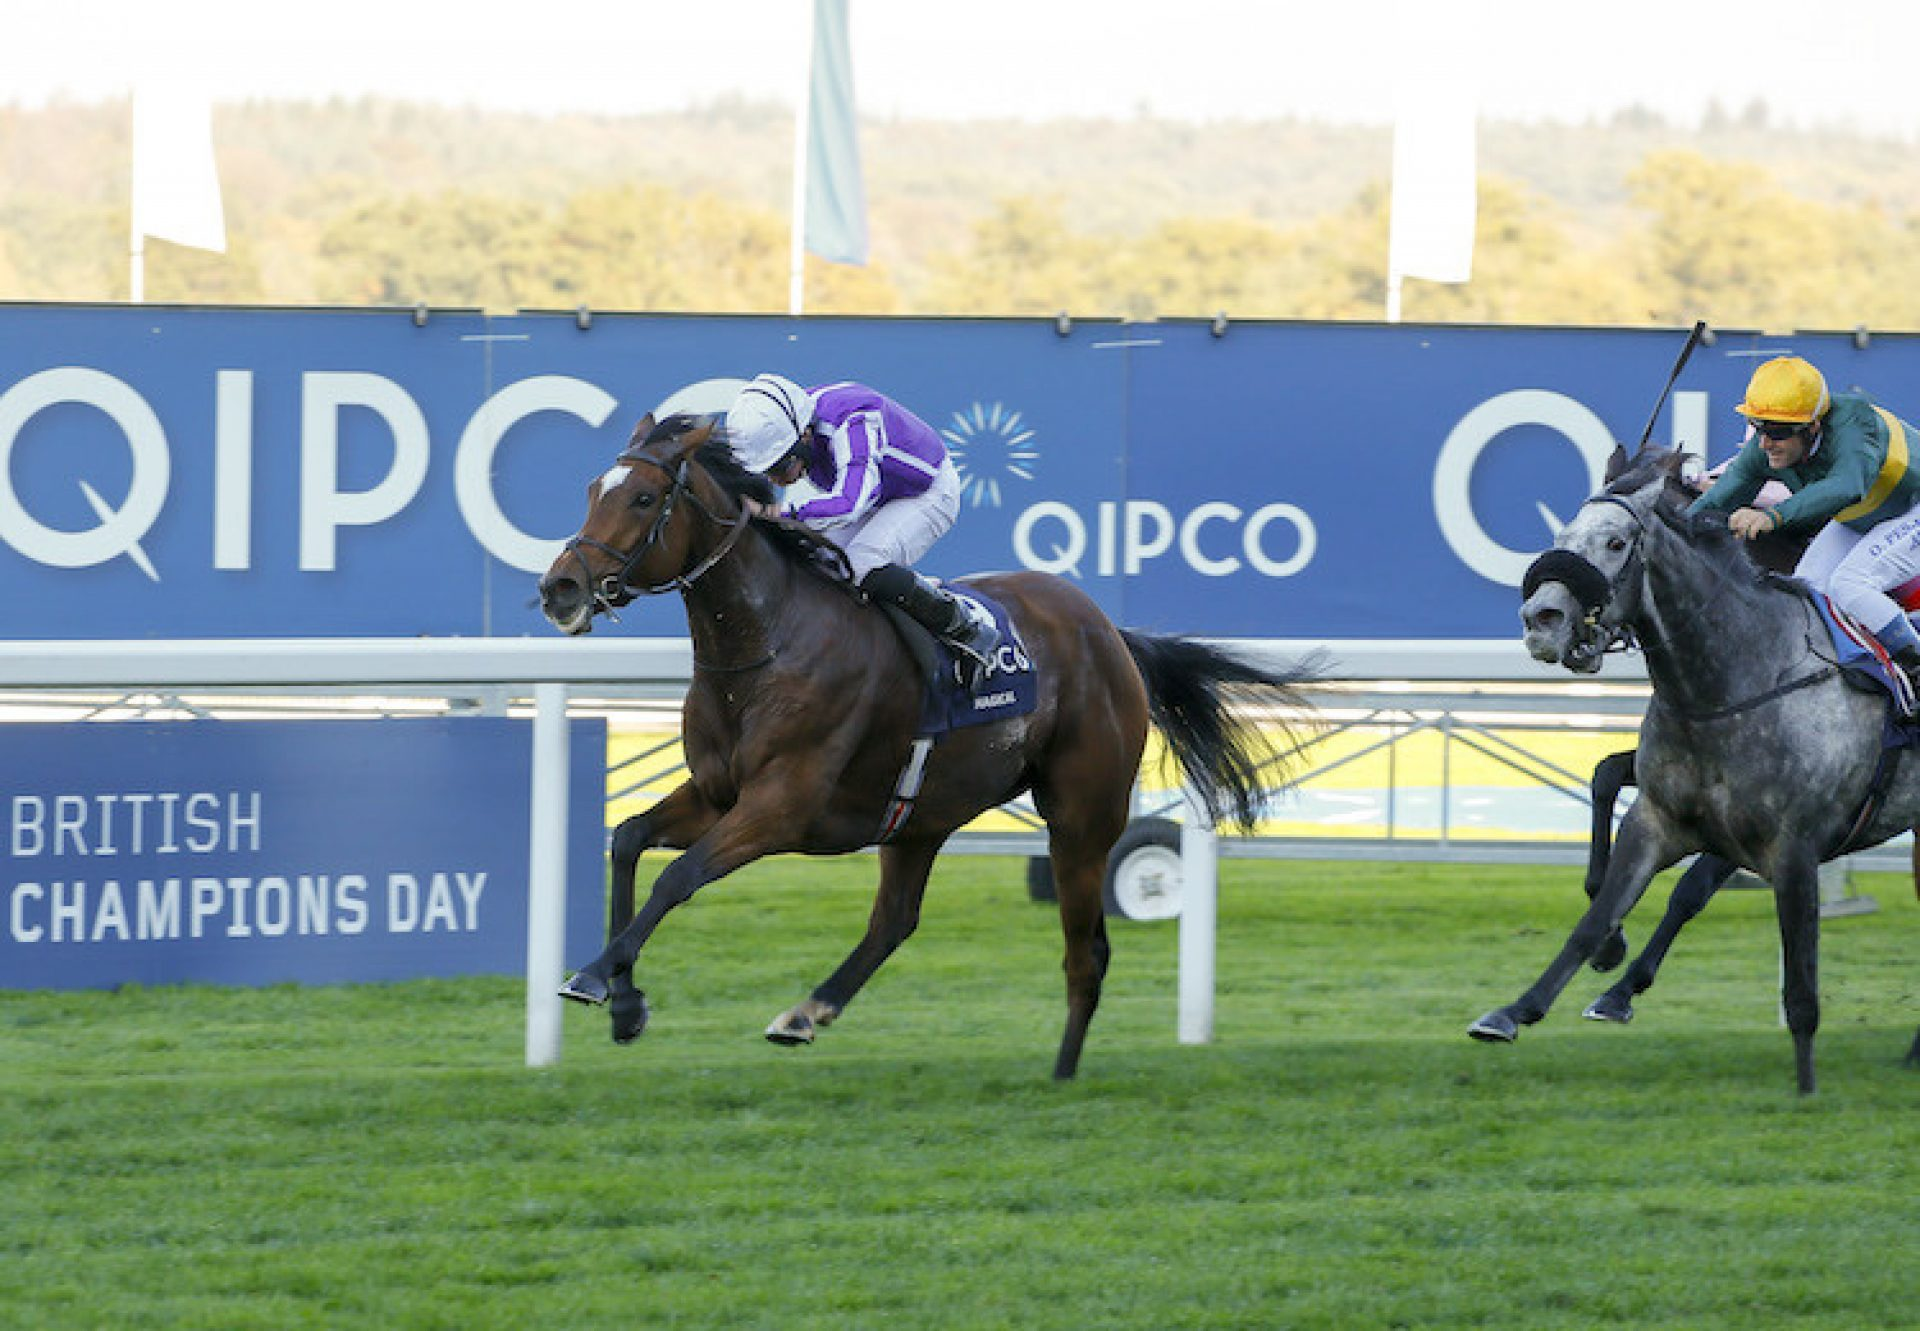 Magical (Galileo) winning the G1 British Champions Fillies & Mares Stakes at Ascot